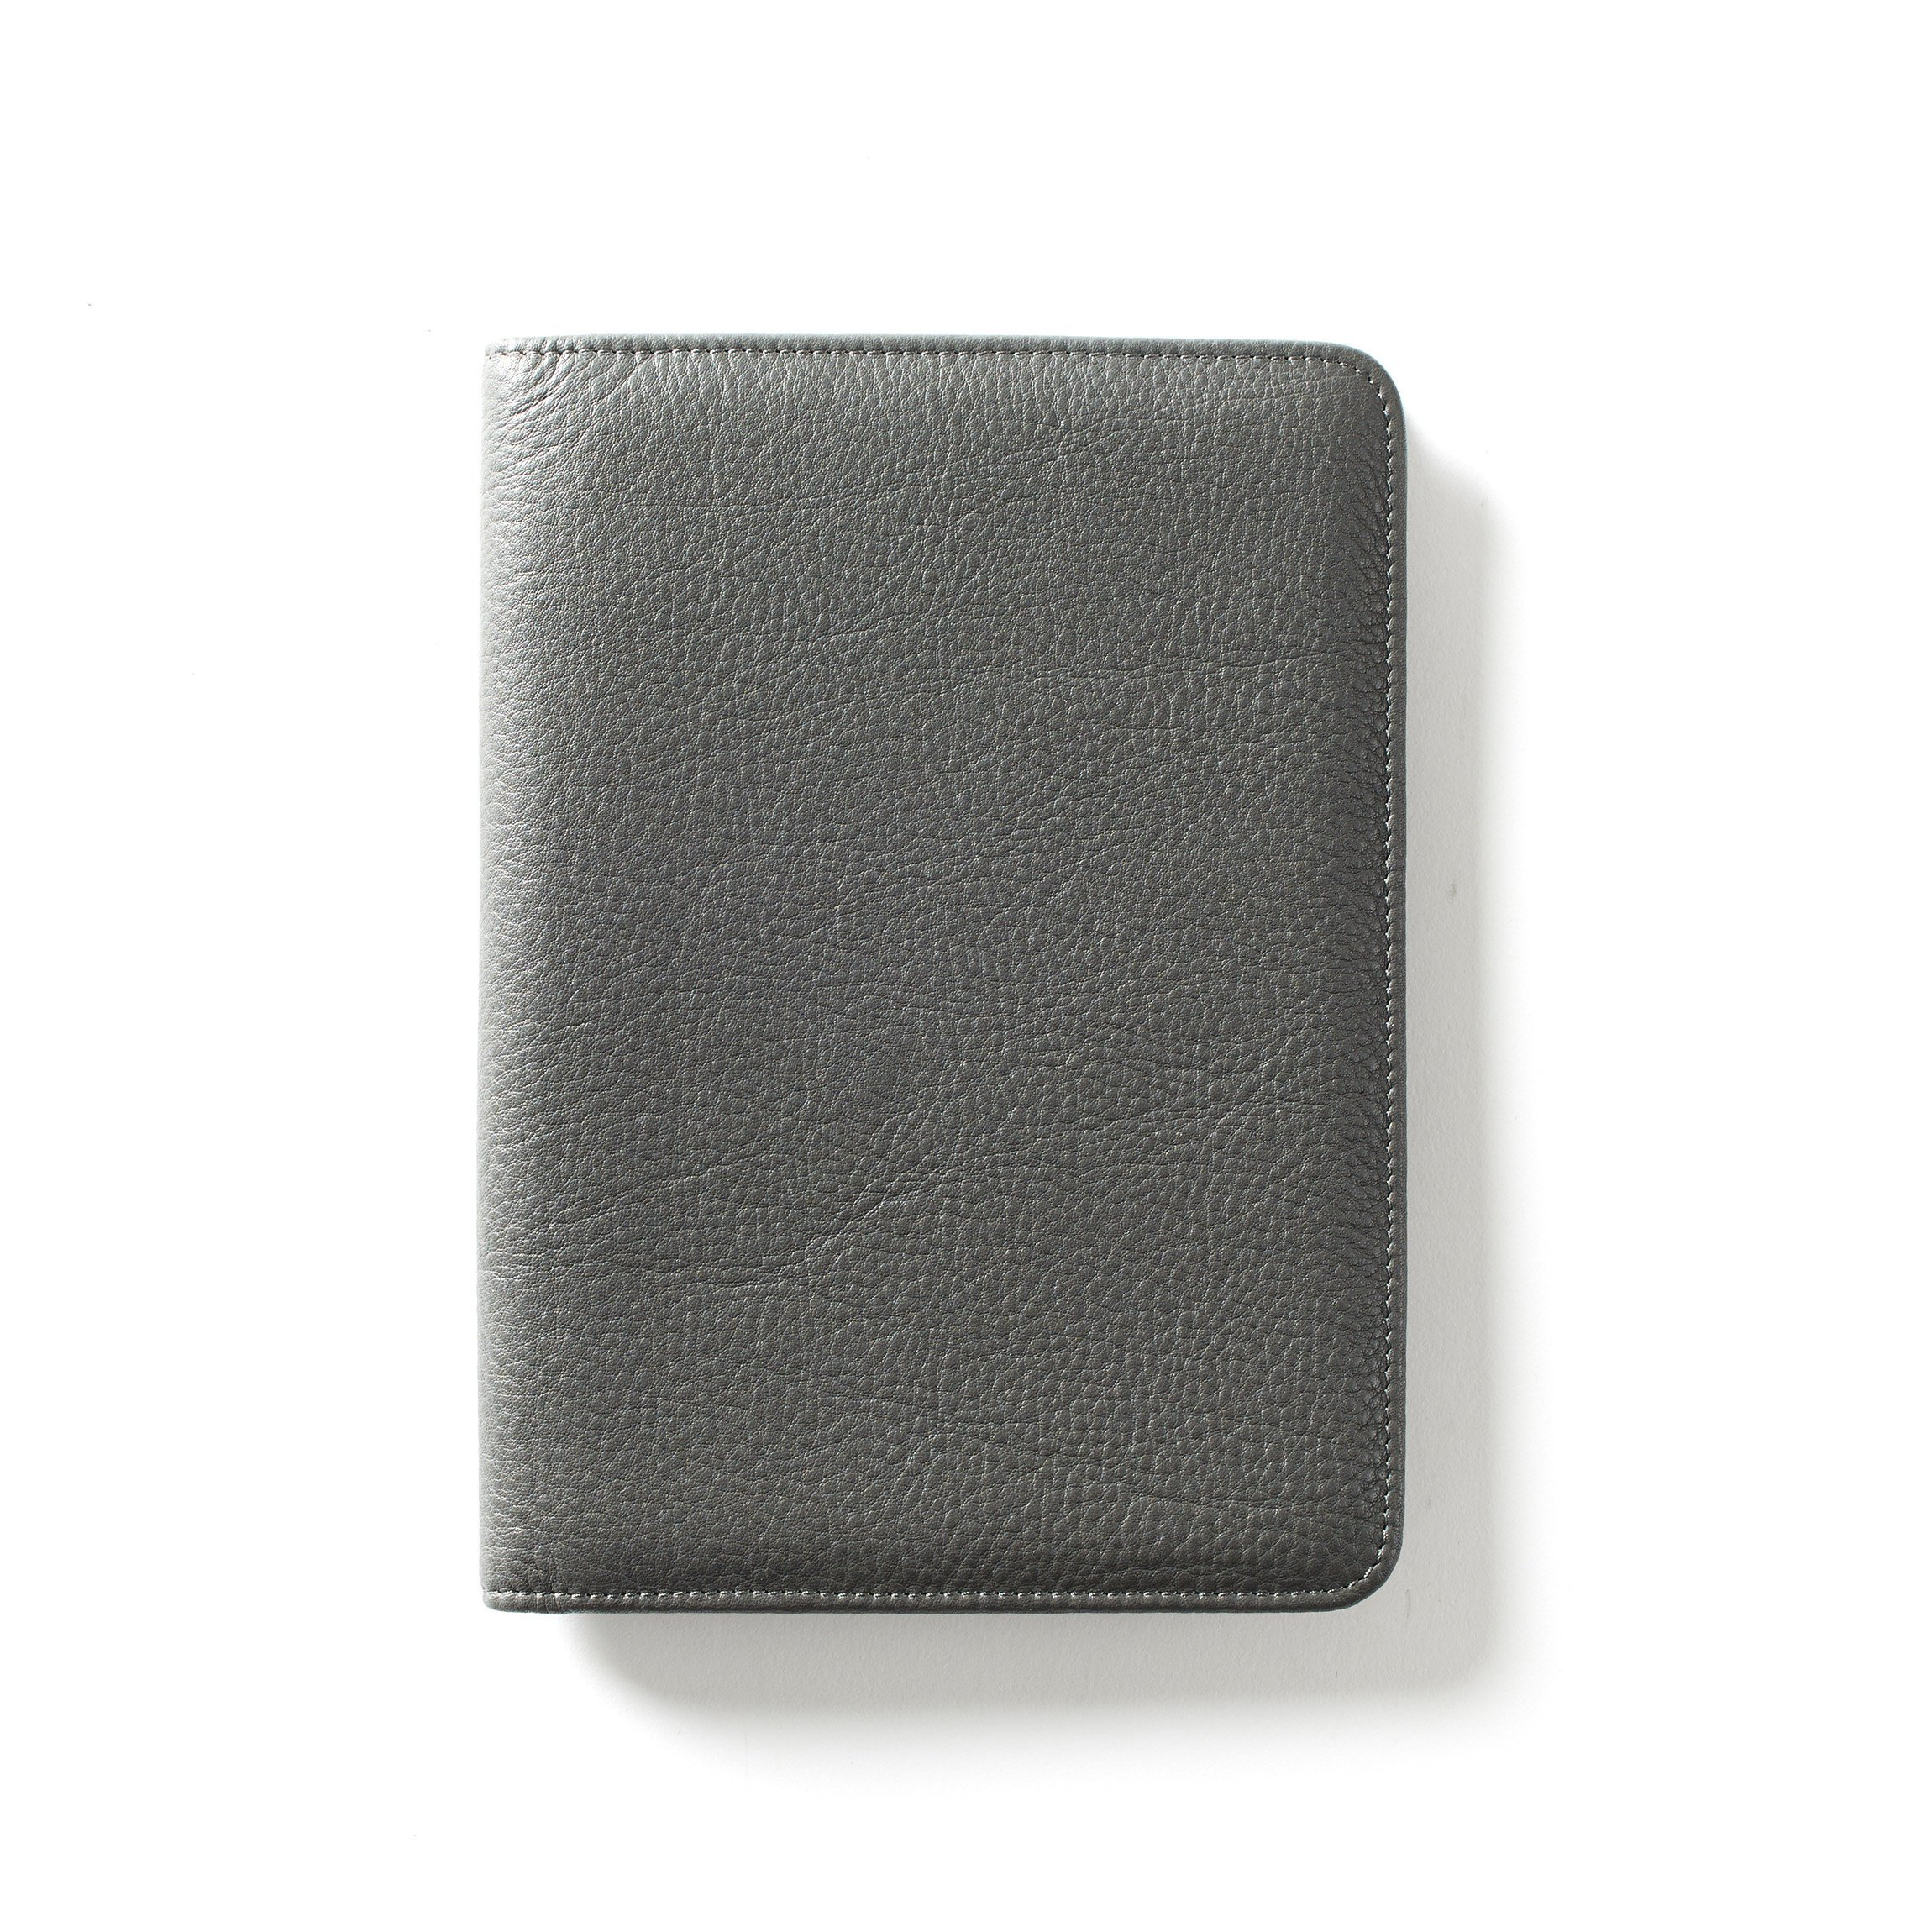 Leatherology Junior Padfolio with Pen Loop - Full Grain Leather Leather - Charcoal (gray) by Leatherology (Image #2)